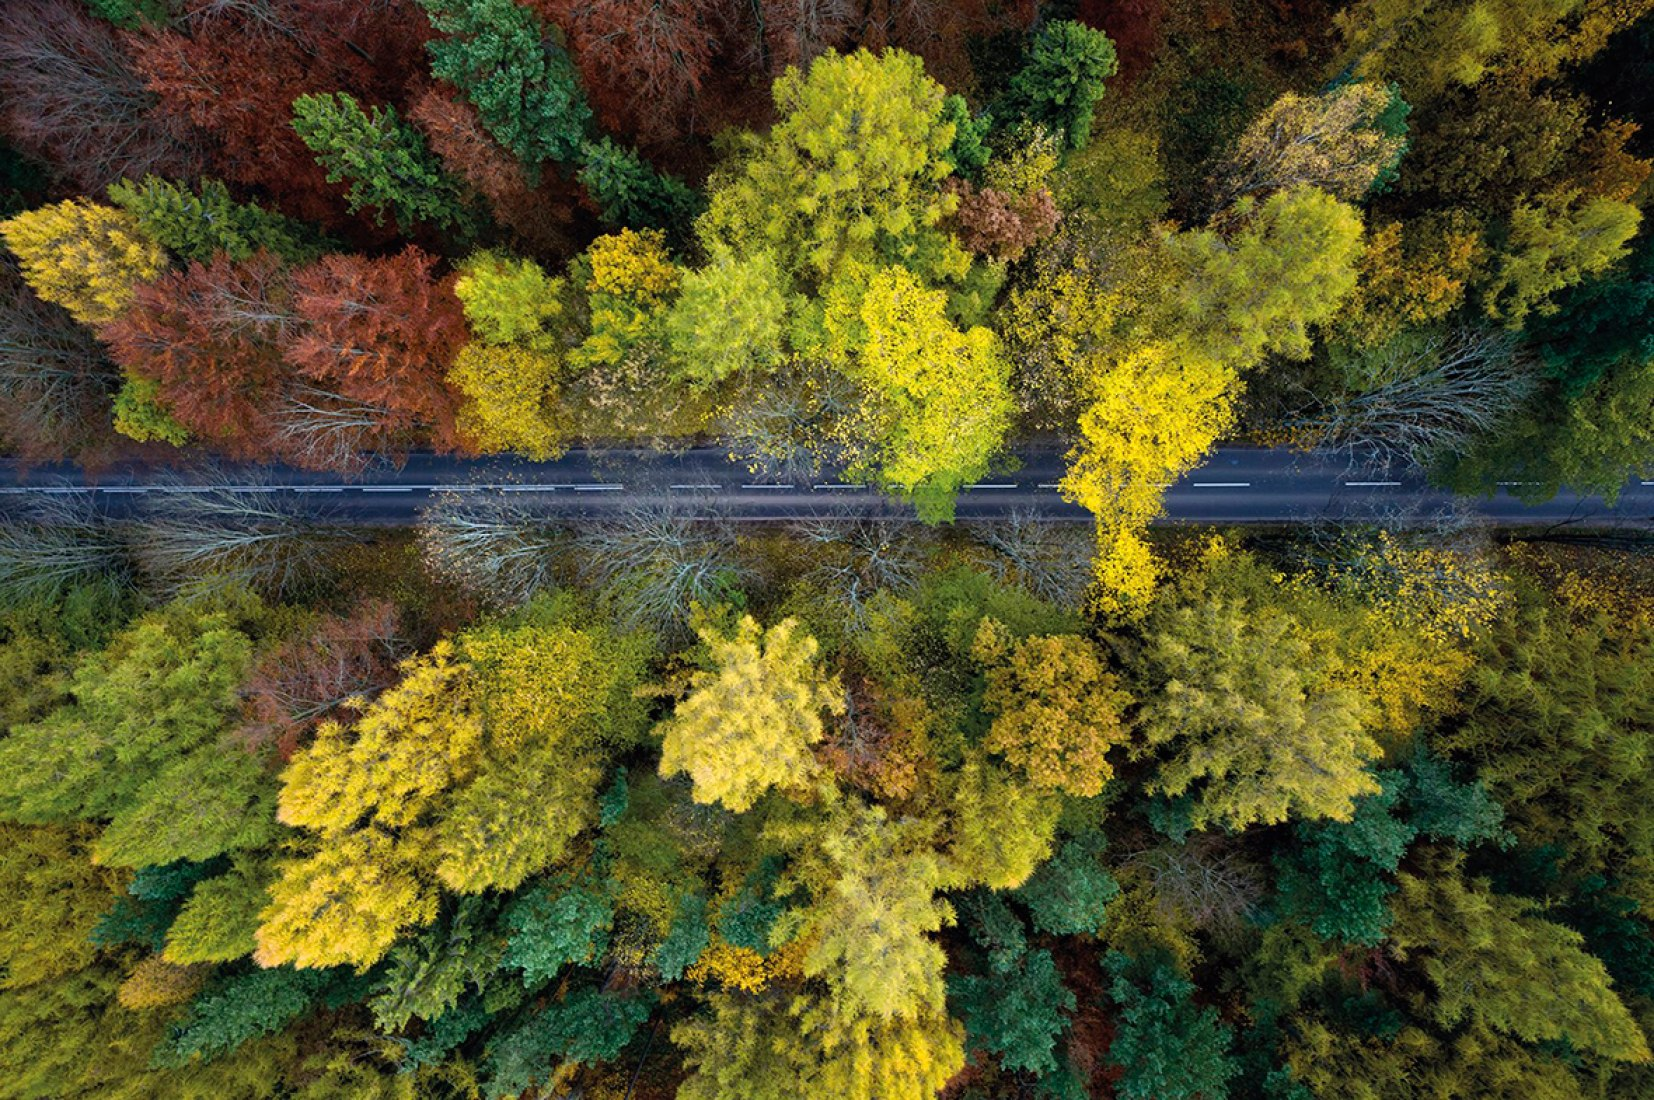 Aerial view the Poland forest. Photography © Kacper Kowalski.